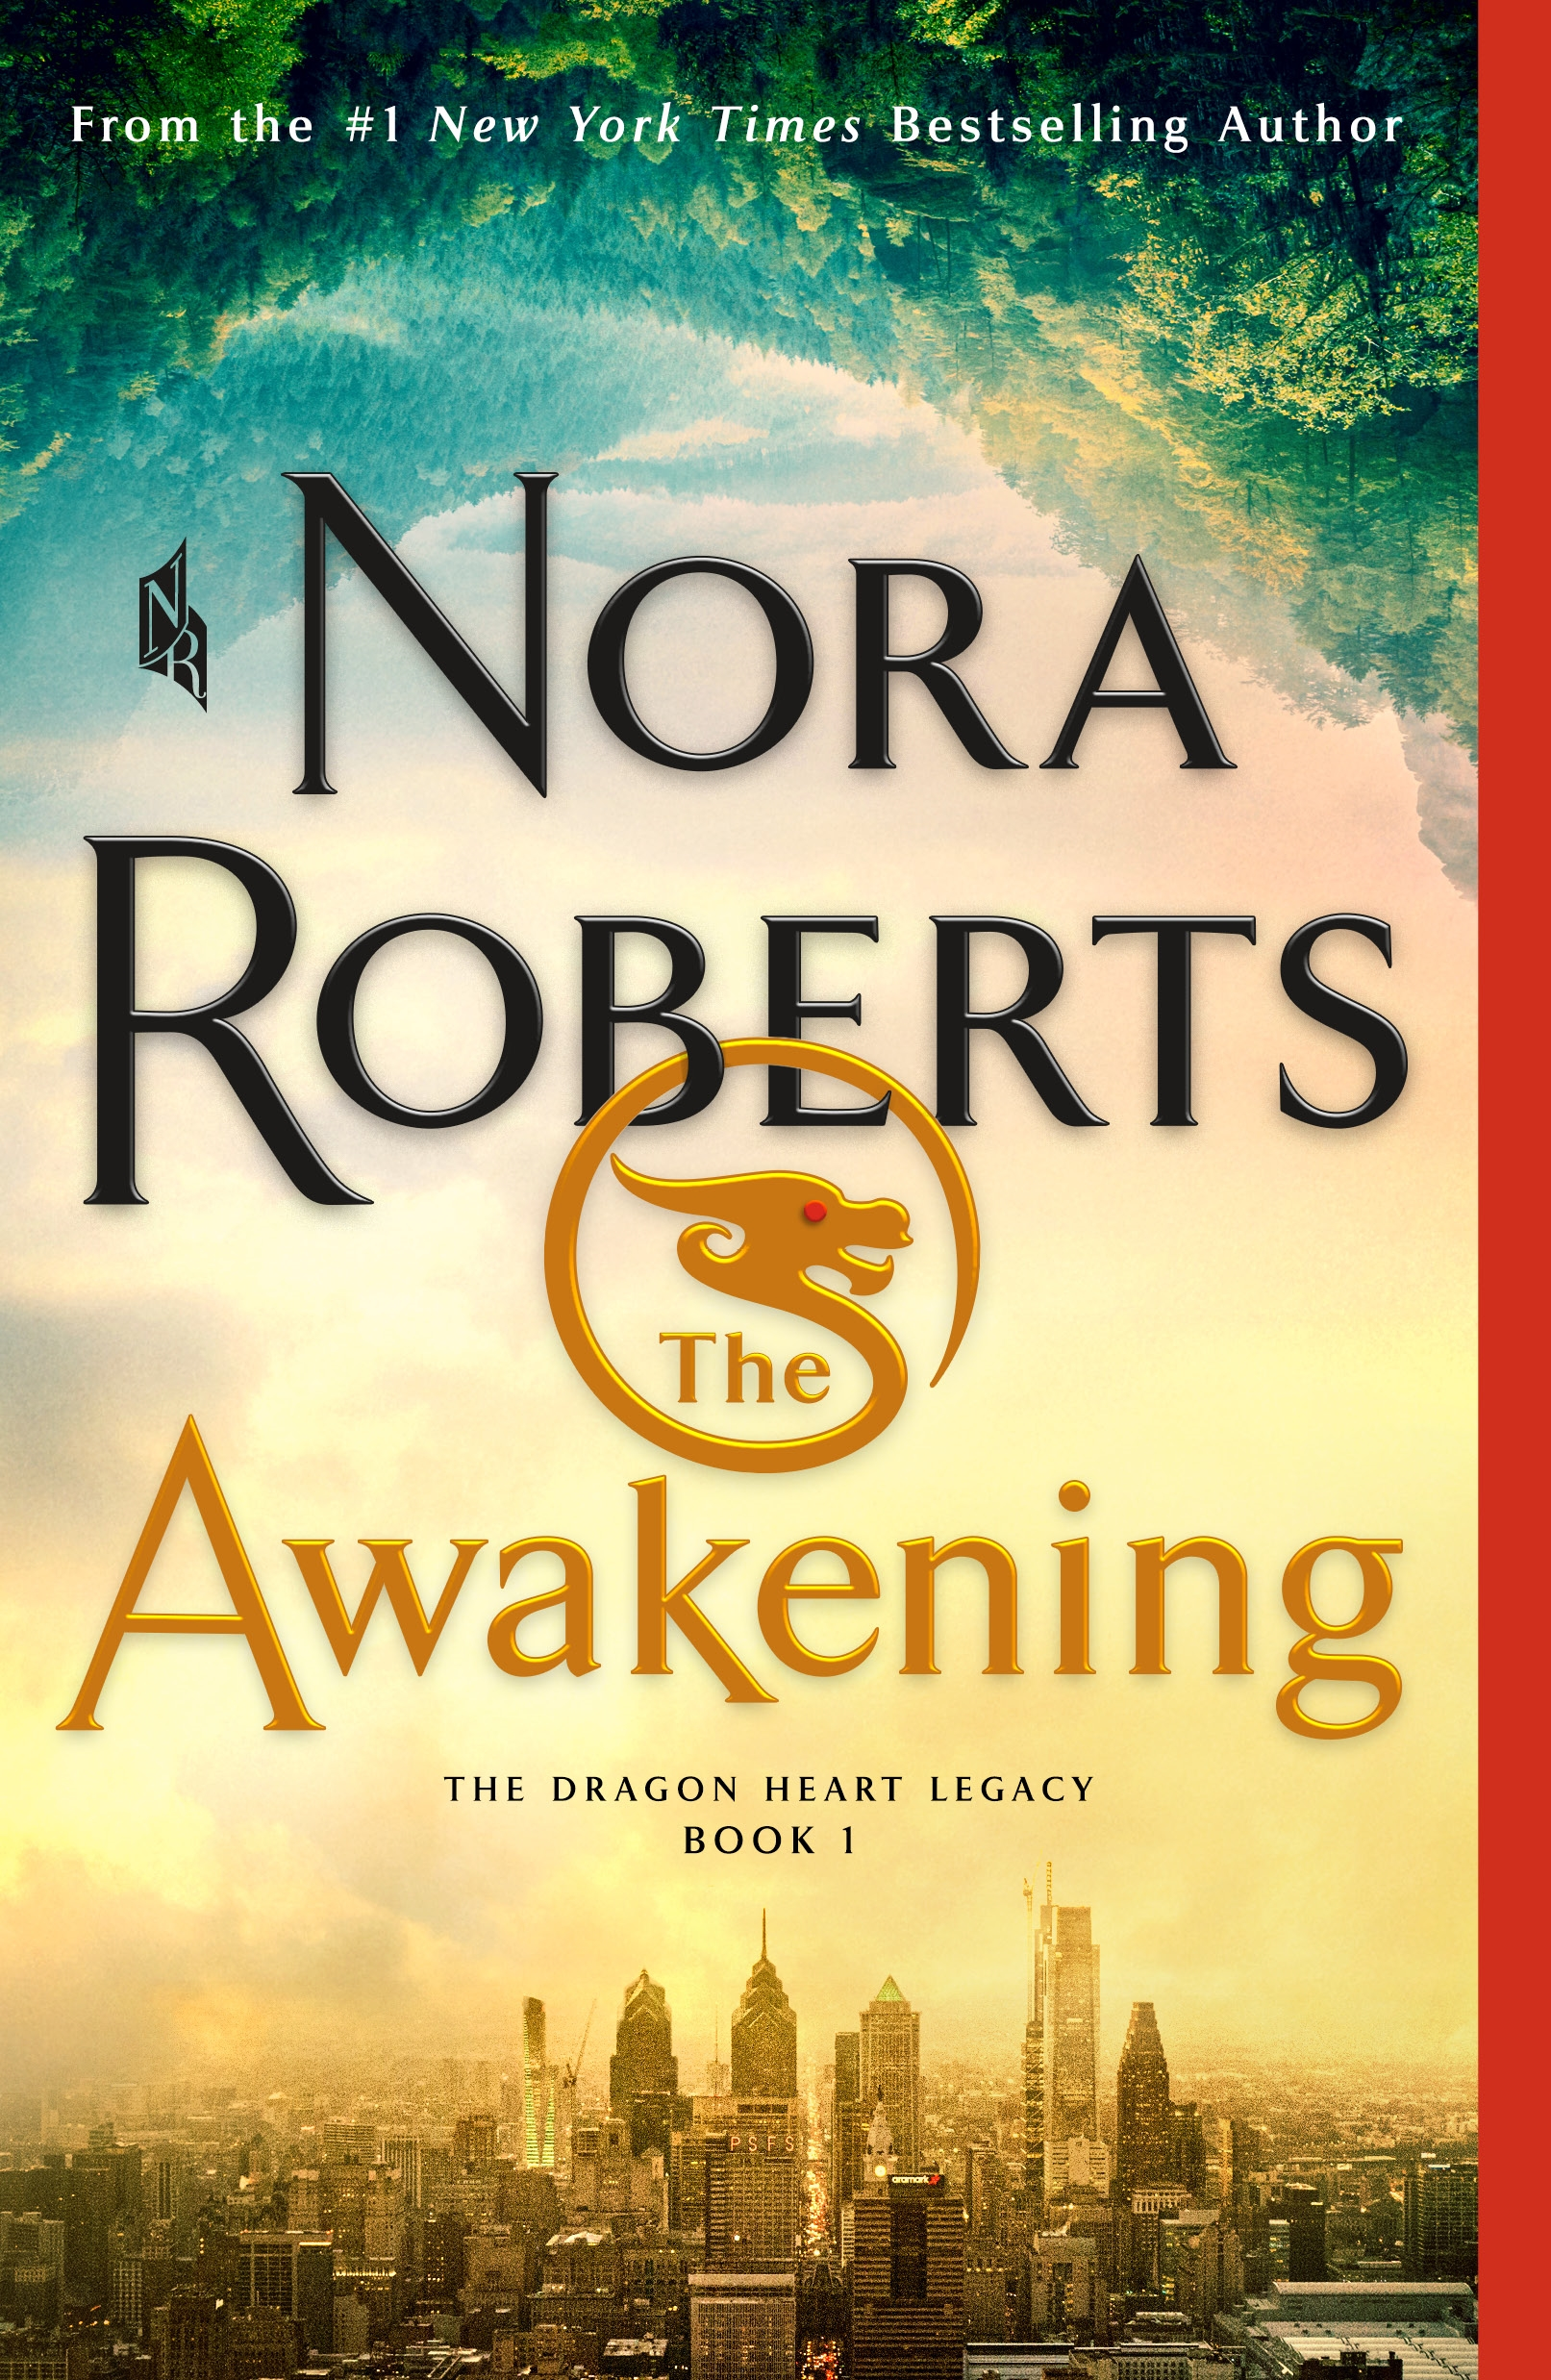 The Awakening The Dragon Heart Legacy, Book 1